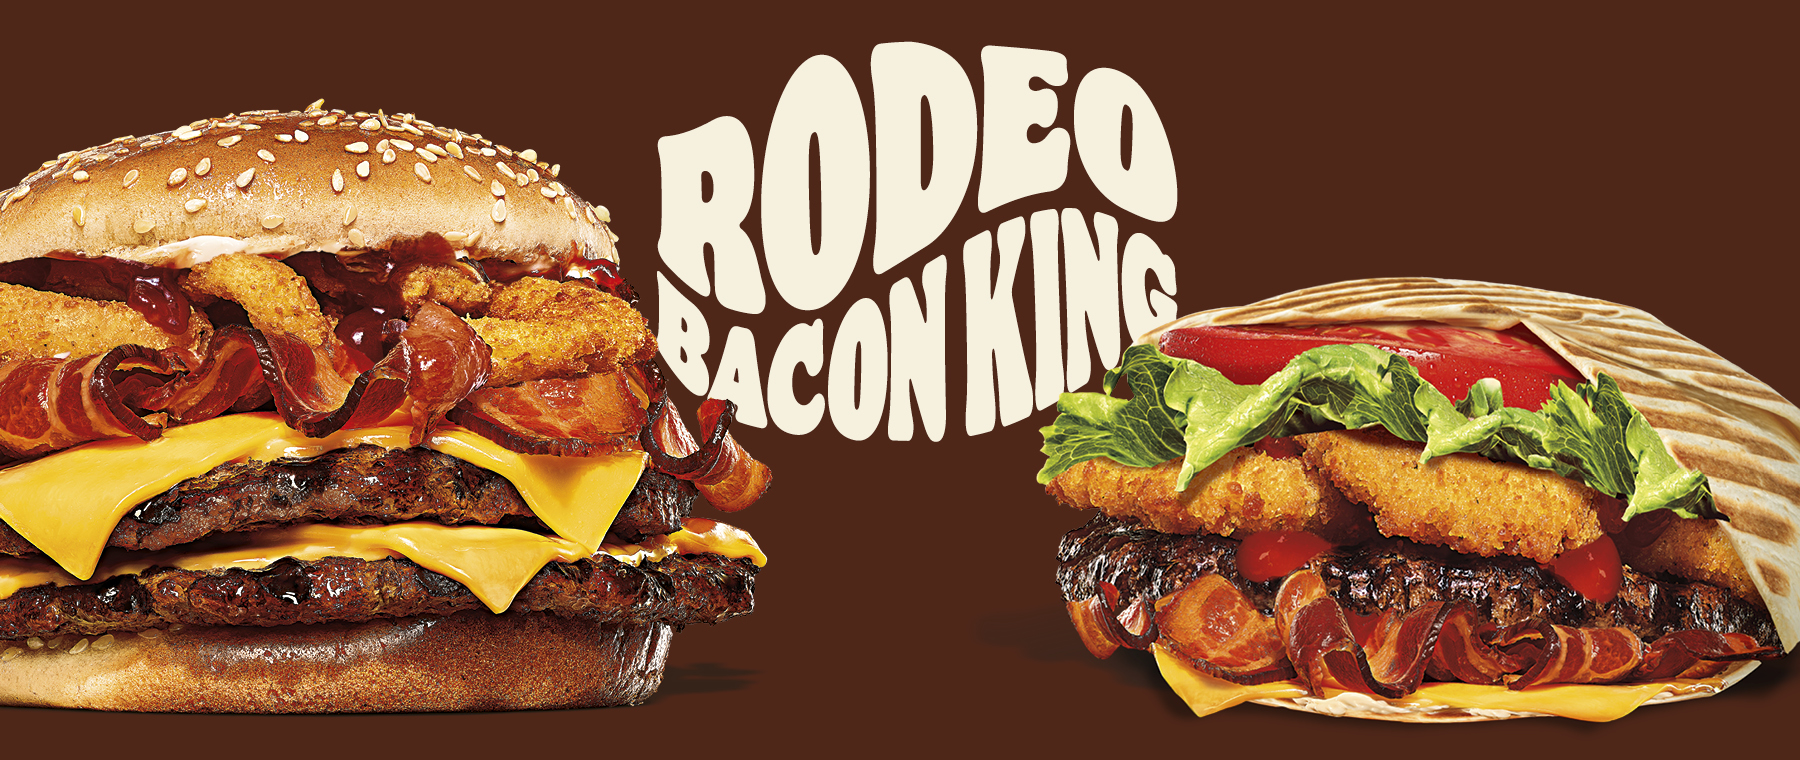 Rodeo Bacon